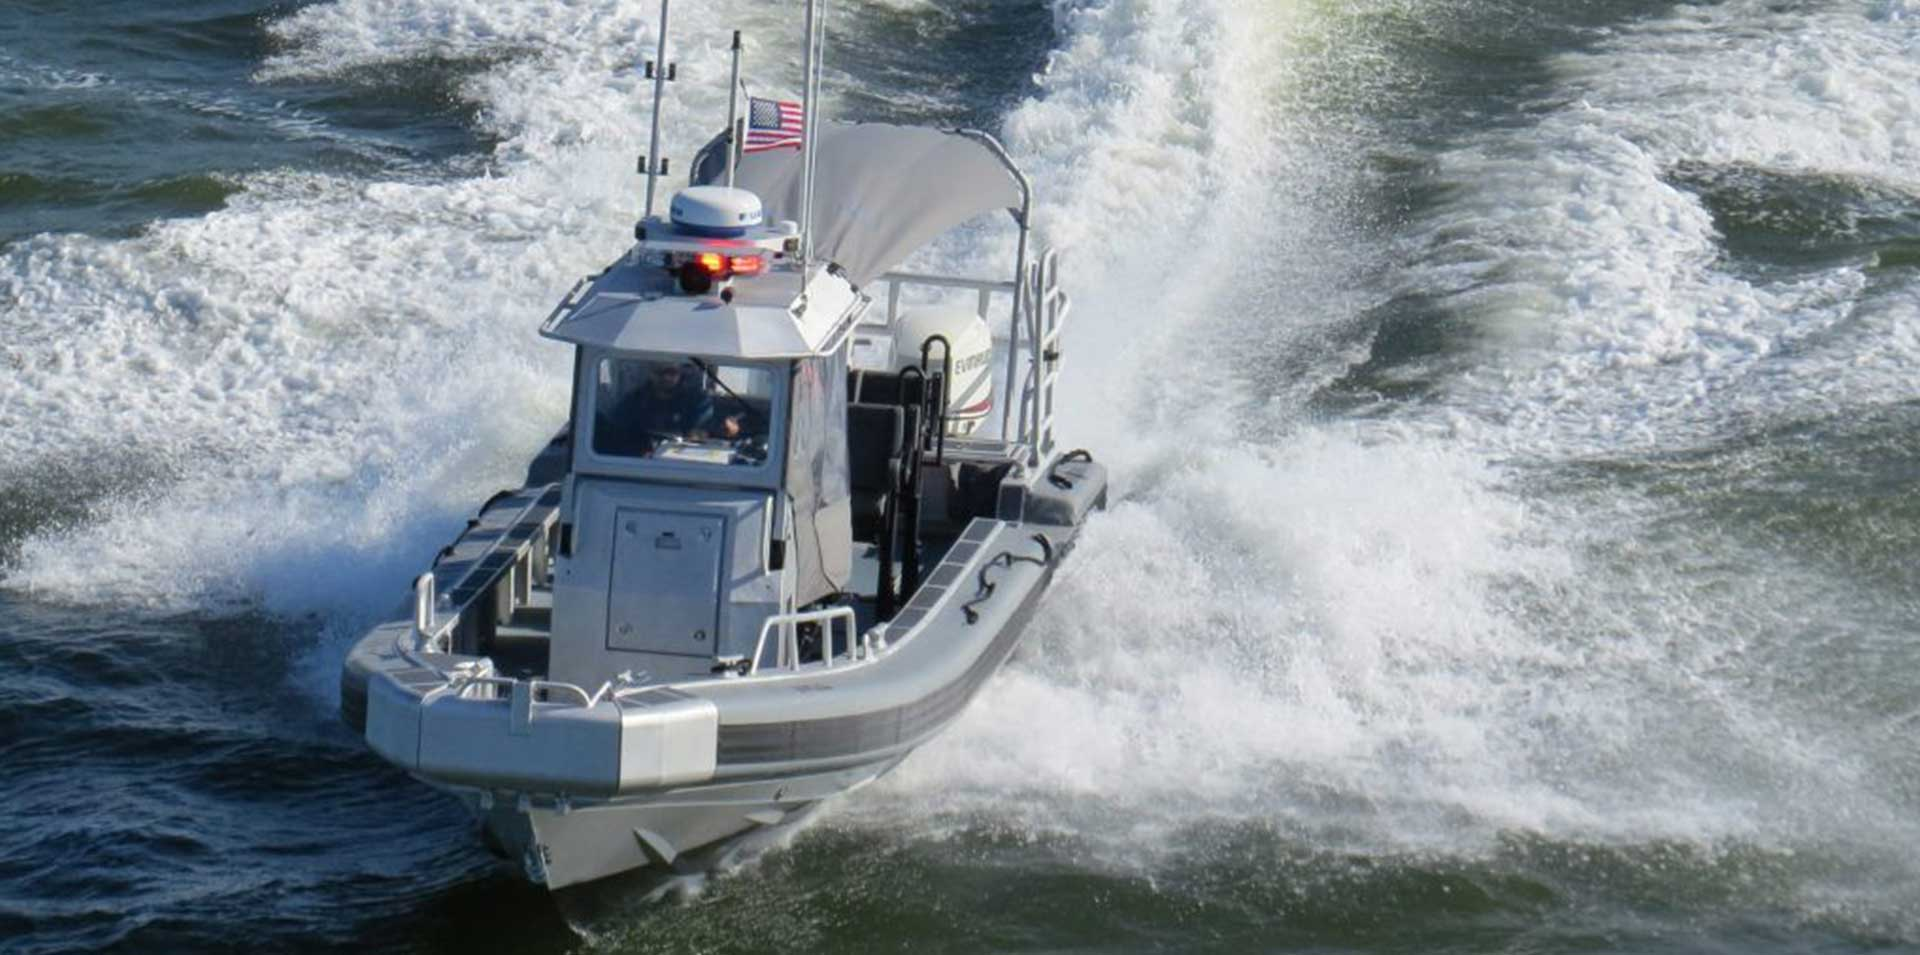 Silver Ships Ambar Series AM 1100 police boat on the ocean